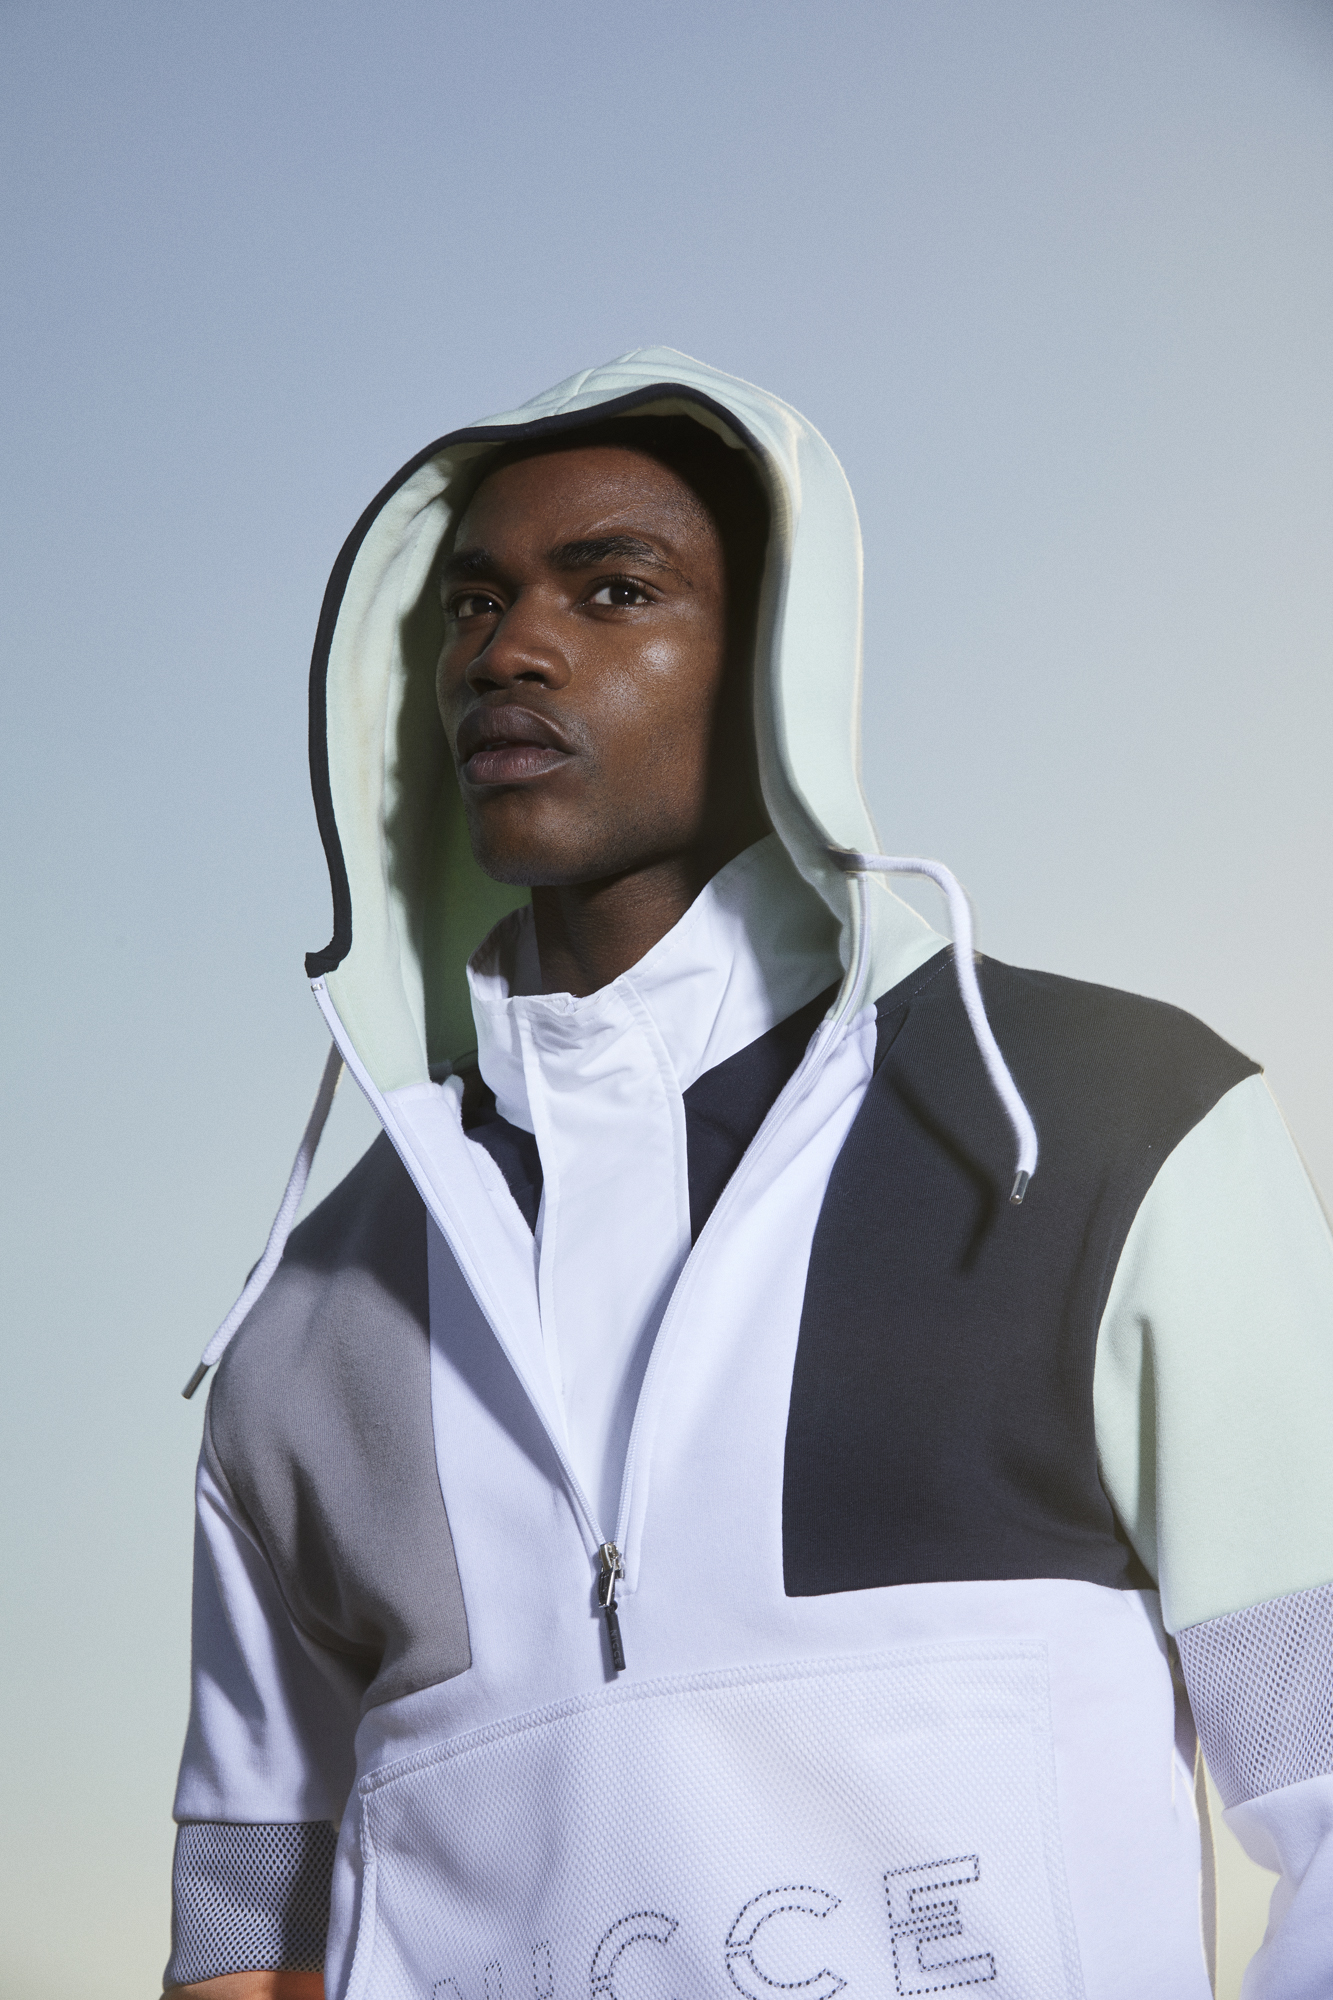 NICCE's new limited edition capsule collection White Label closeup